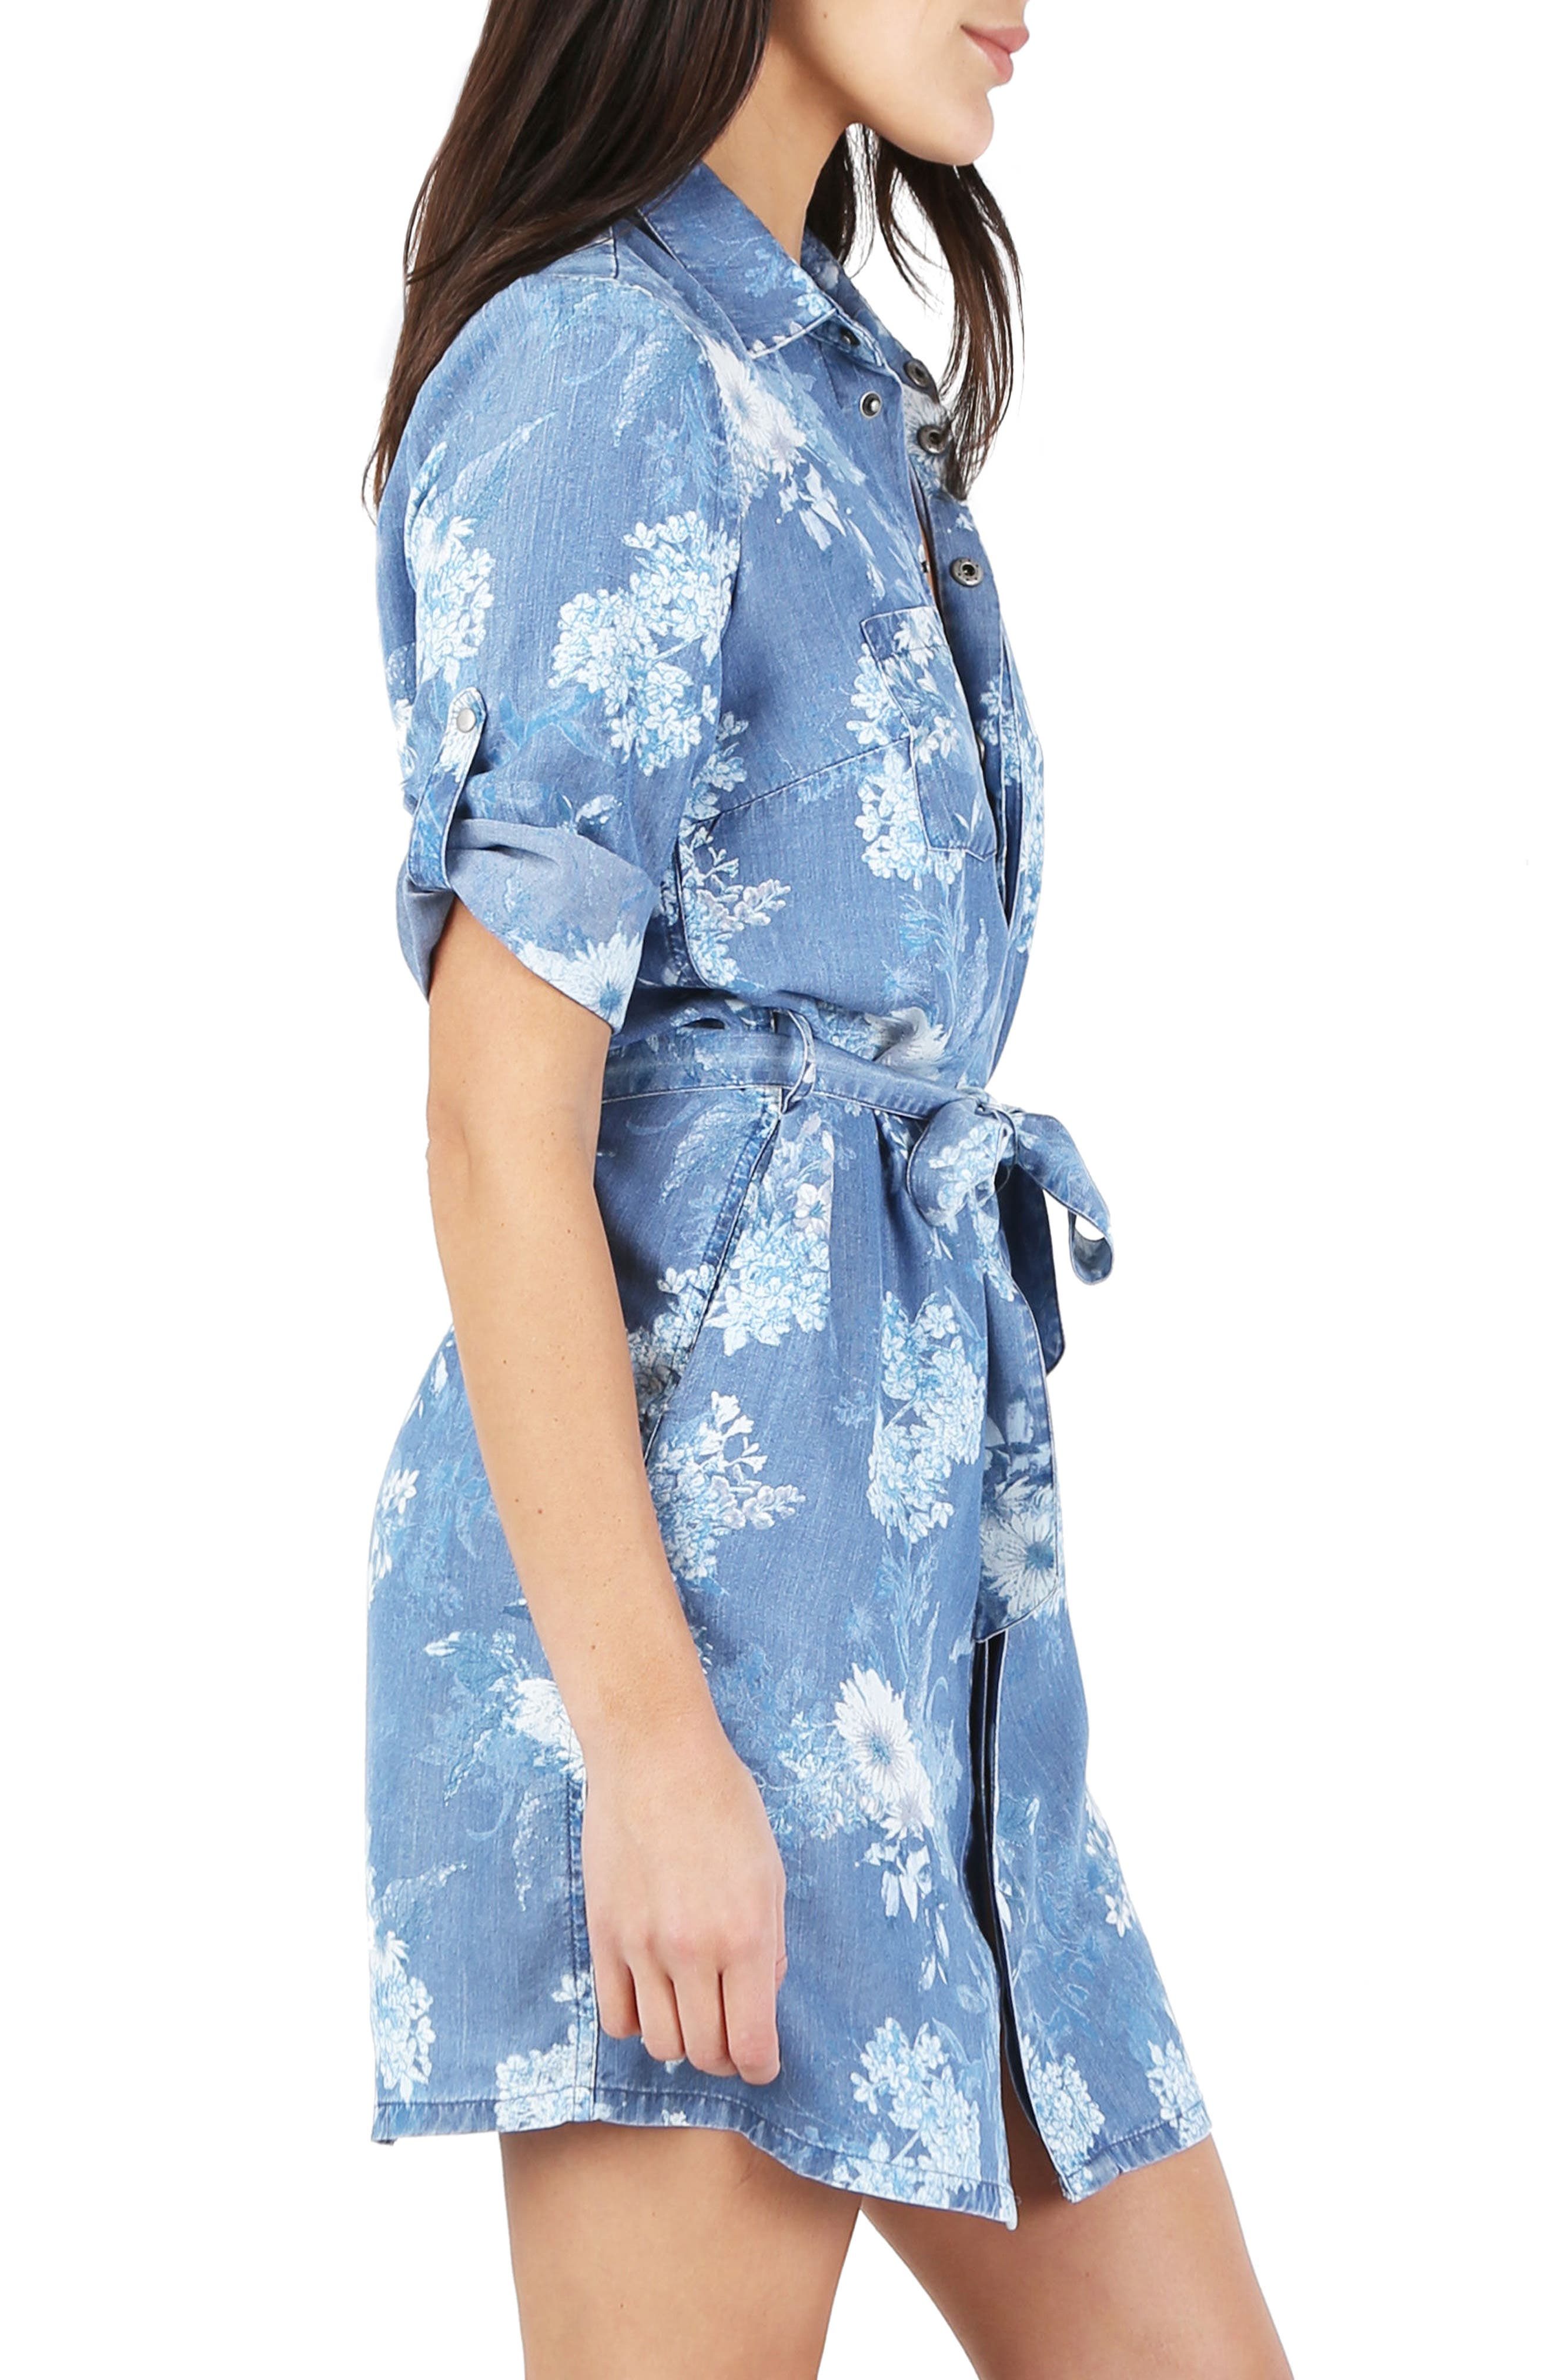 Amerie Belted Chambray Dress,                             Alternate thumbnail 3, color,                             400